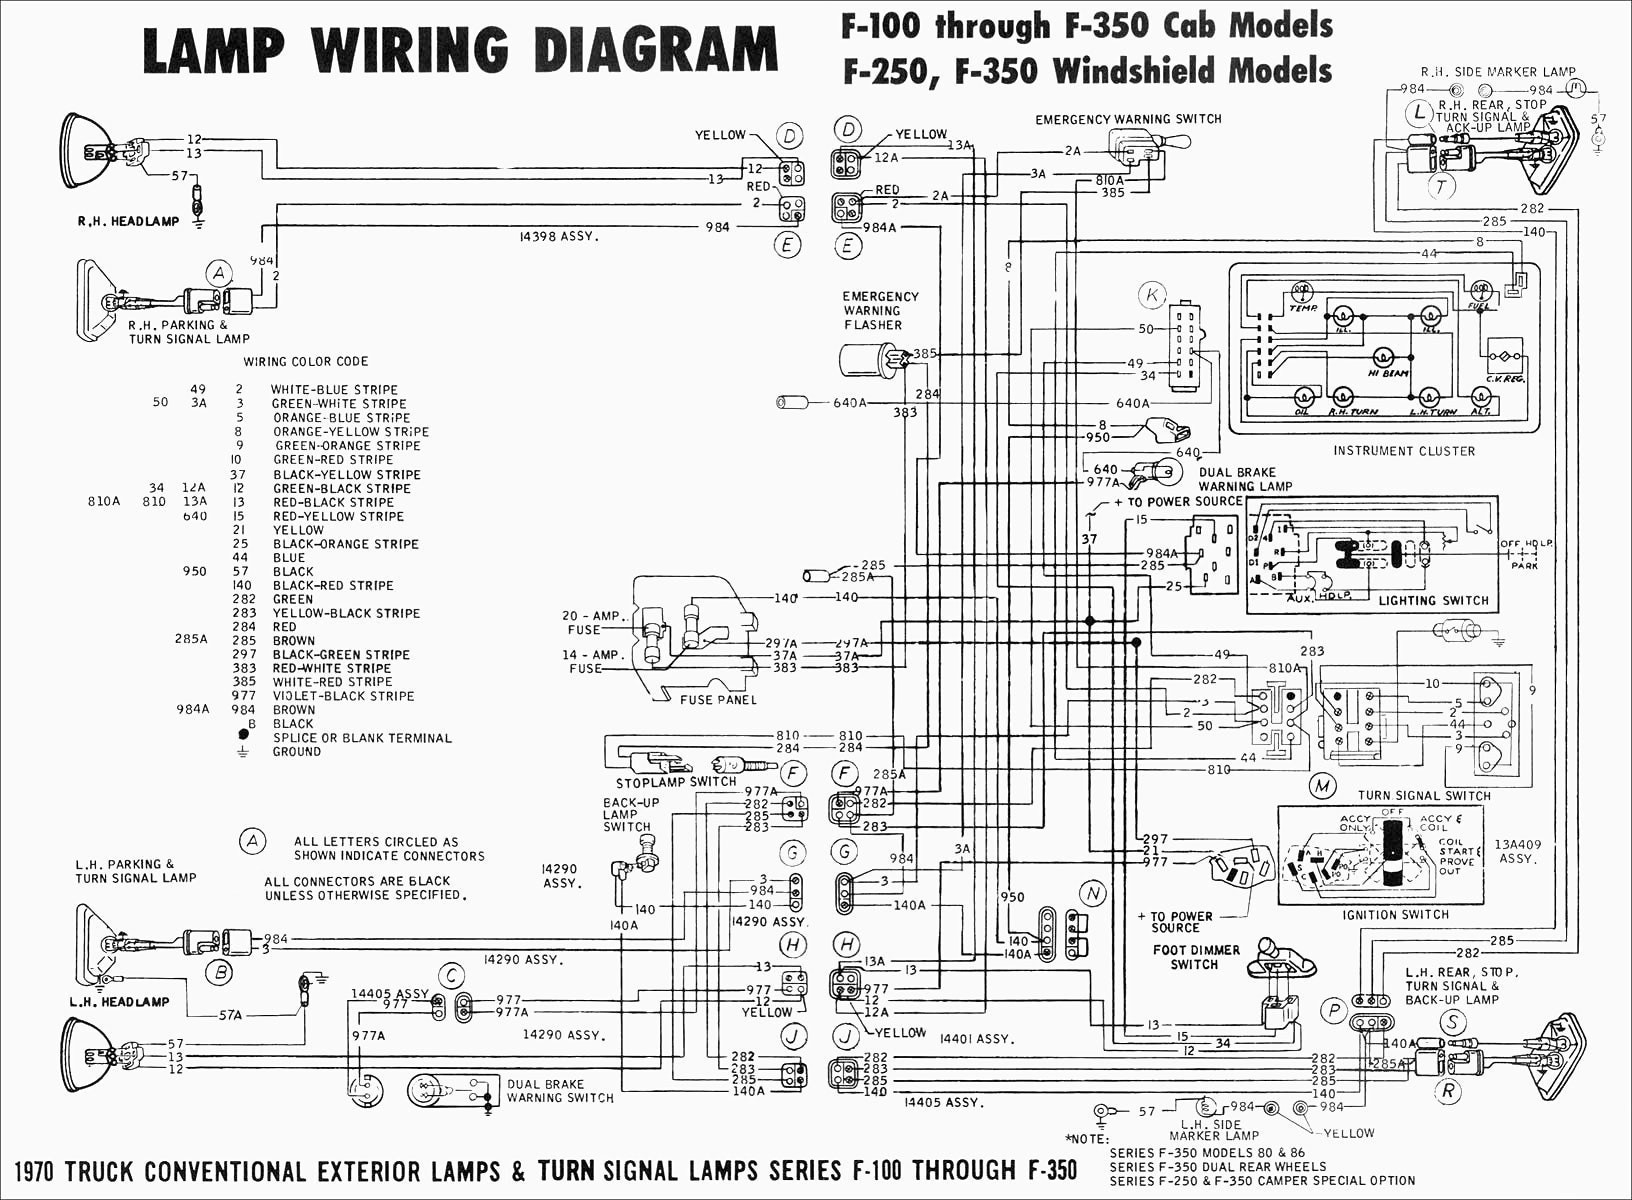 Amp Research Power Step Wiring Diagram Dcac93f Wire Diagram Allis Chalmers B12 Of Amp Research Power Step Wiring Diagram